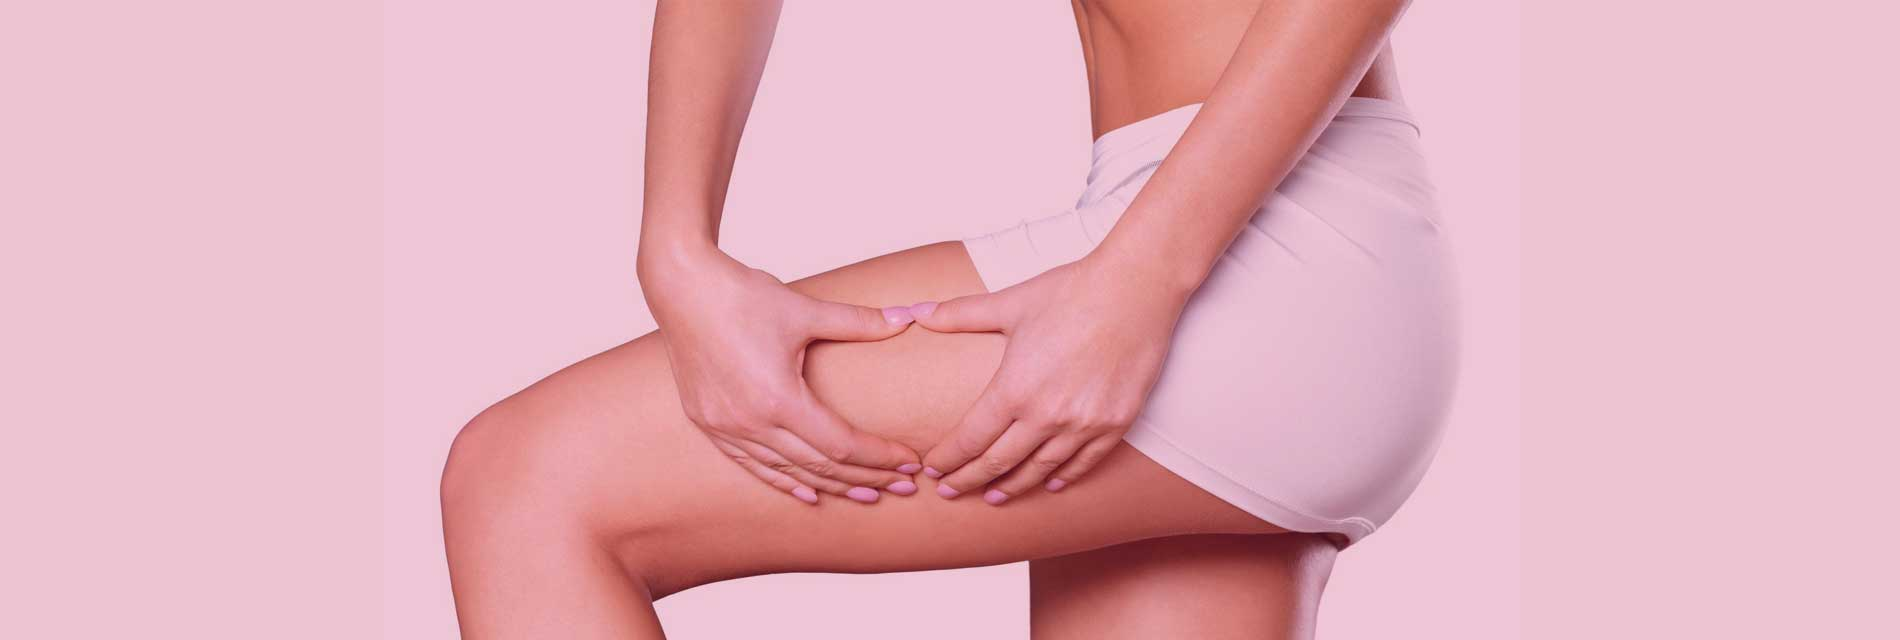 image Anti cellulite mesotherapy treatment